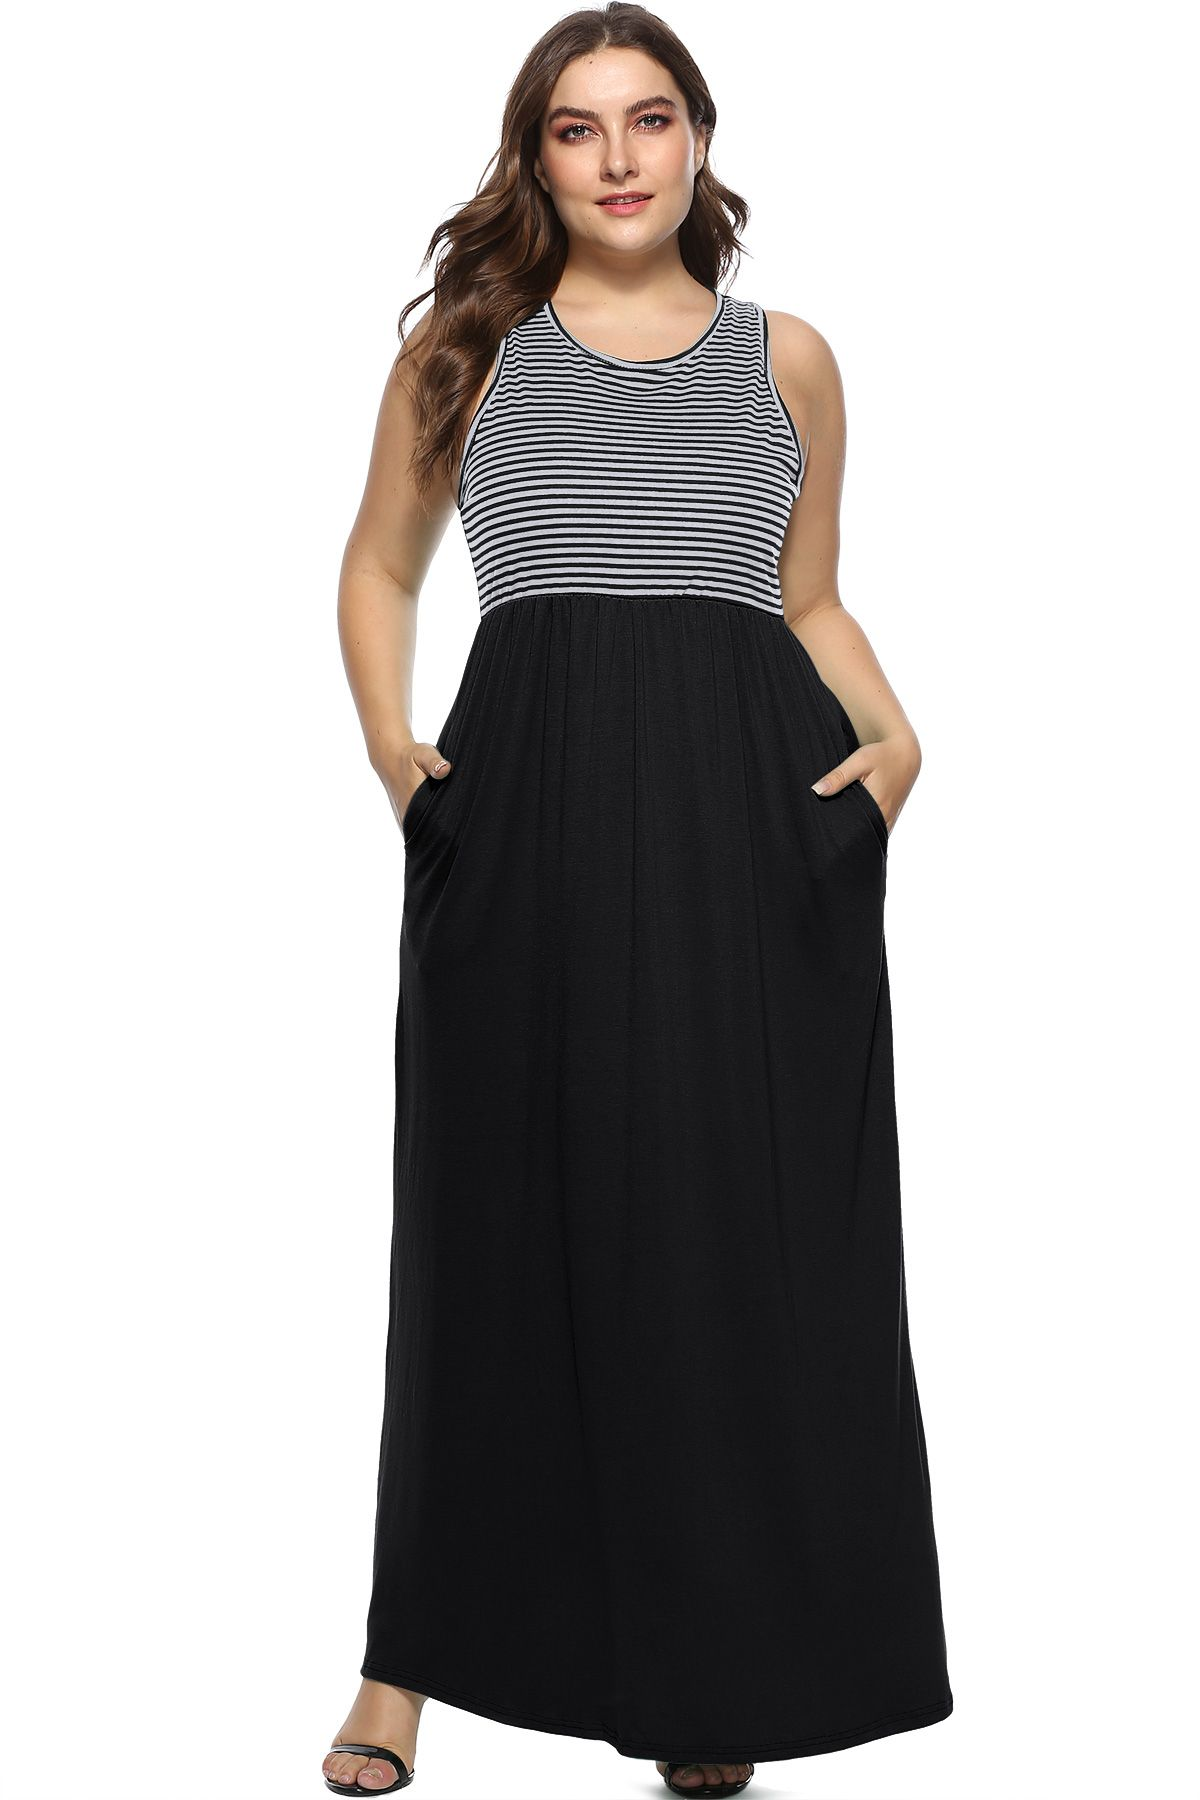 a12cae913a Women s Plus Size Striped Sleeveless Racerback Loose Maxi Dresses Casual Long  Dresses with Pockets